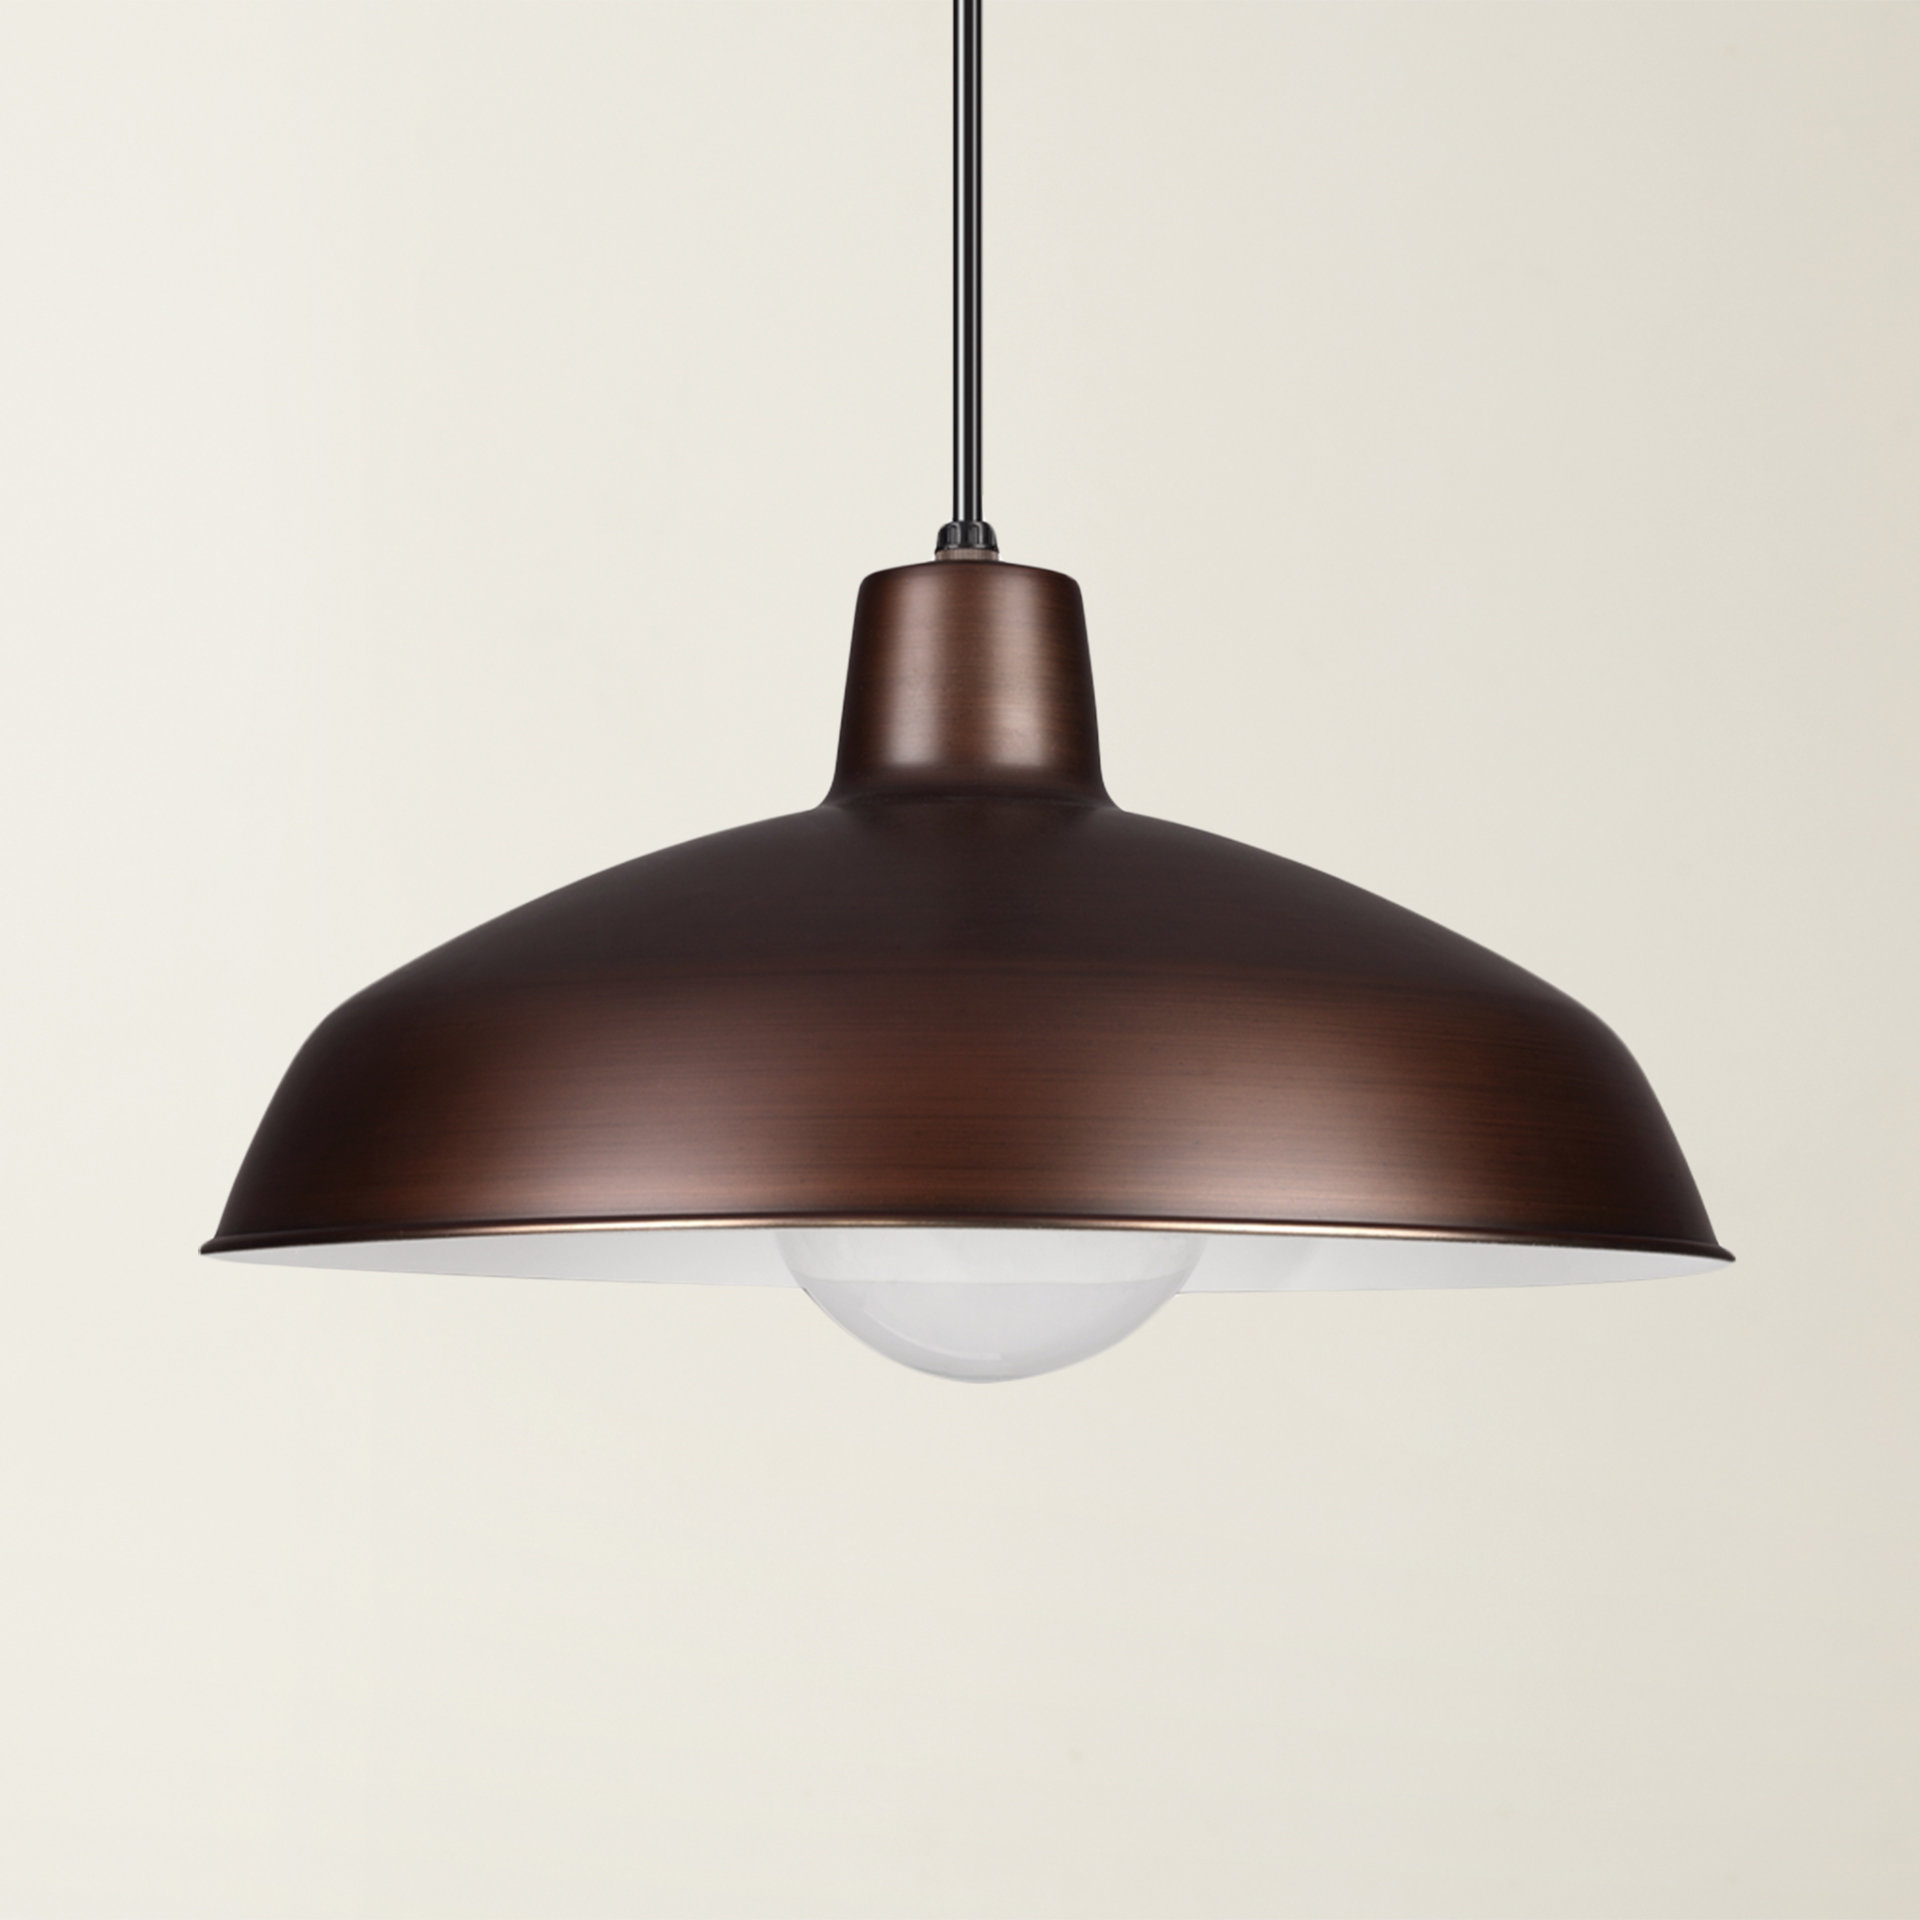 Gattis 1 Light Dome Pendants Intended For Current Mendelson 1 Light Dome Pendant (View 8 of 20)